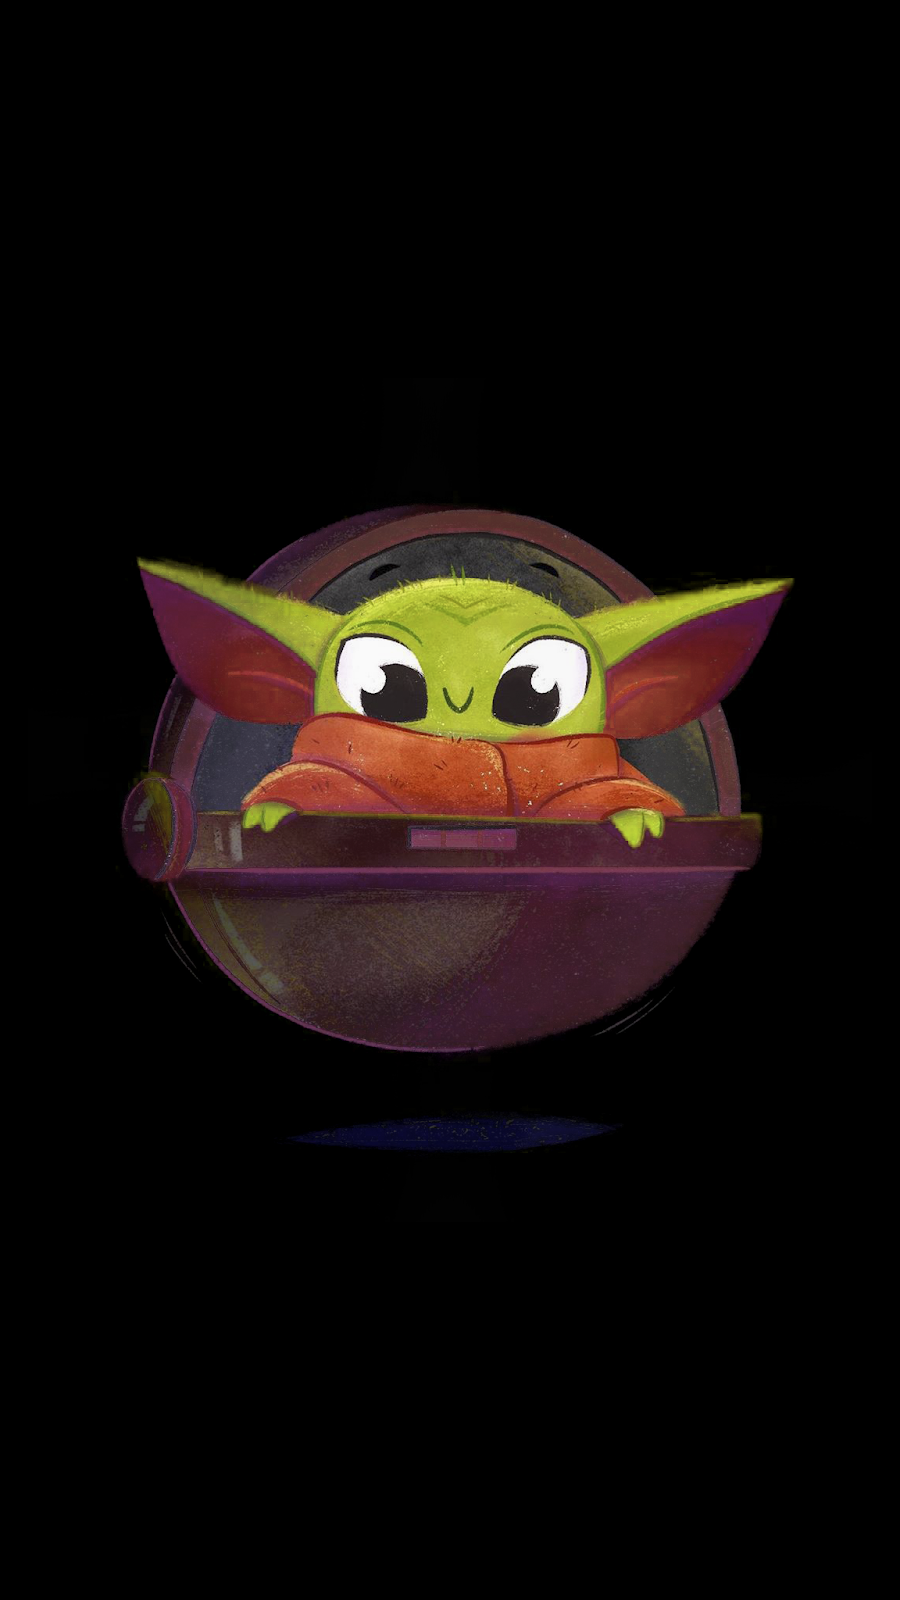 baby yoda wallpaper ios iphone android